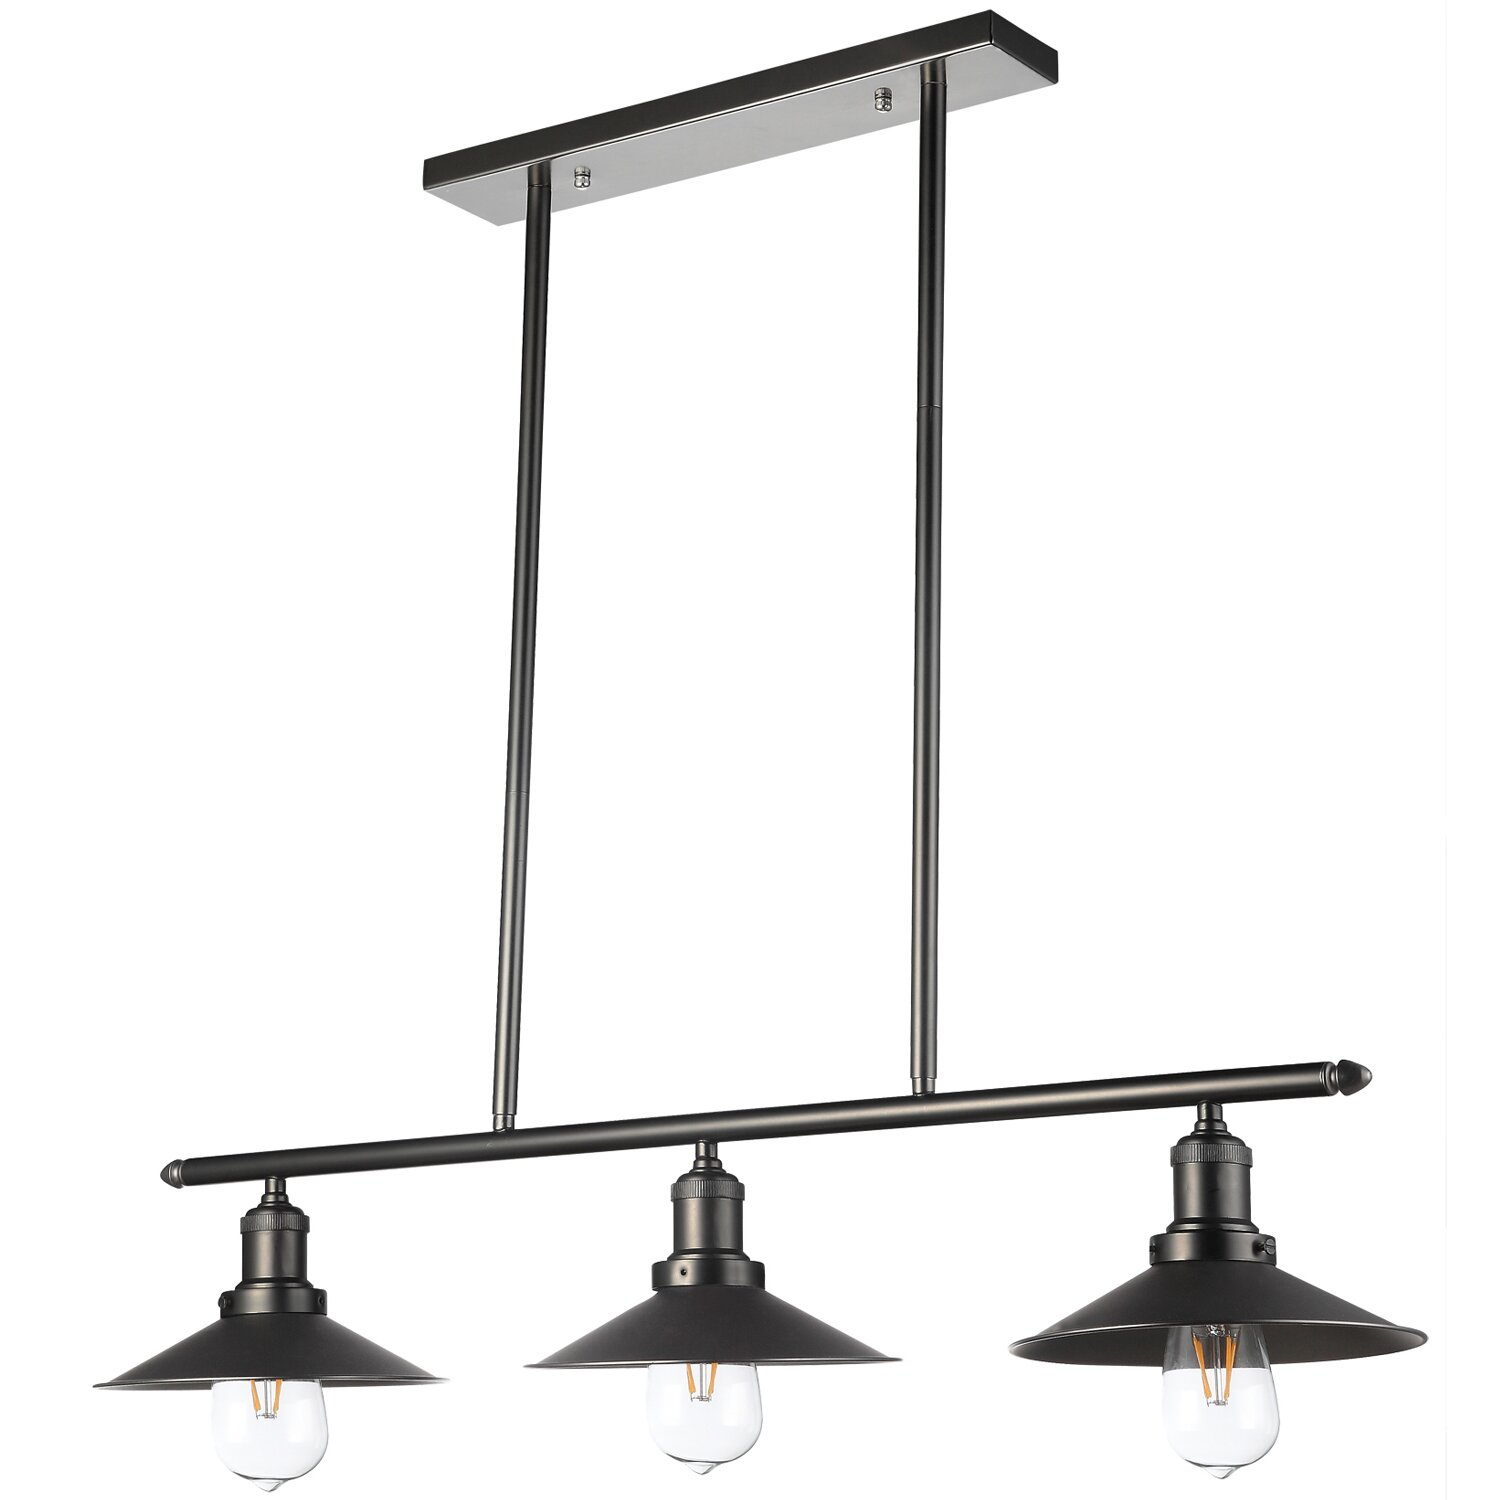 3 light pendant island kitchen lighting vonnlighting delphinus 3 light kitchen island pendant 26304